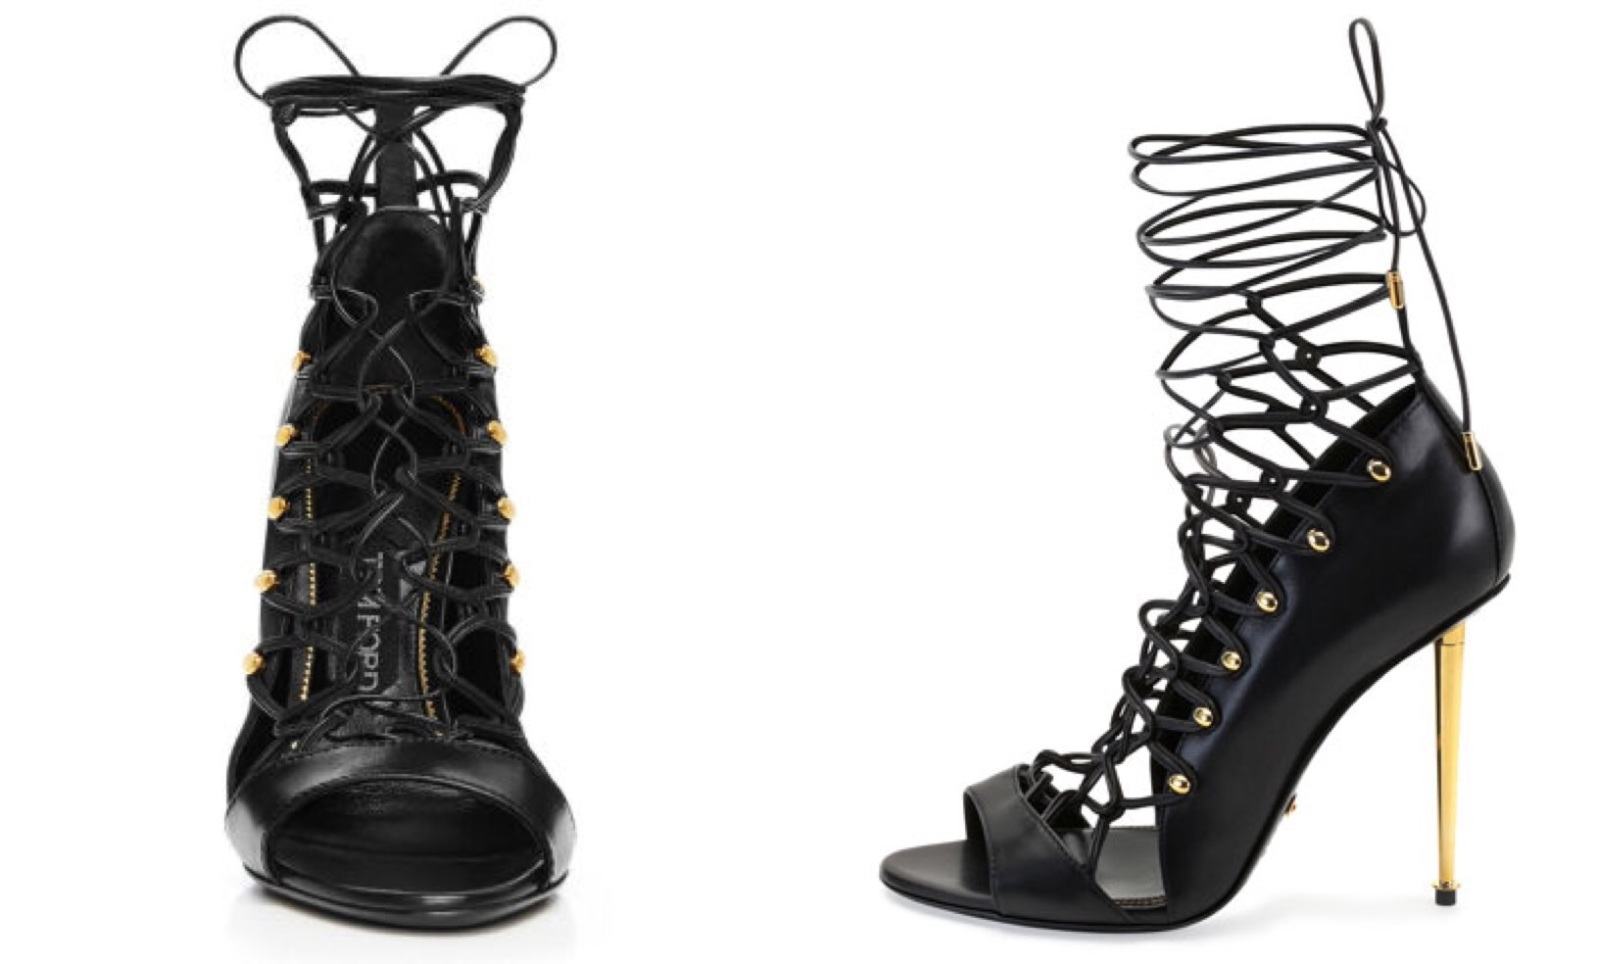 Tom Ford Lace Up Heels e2pT0g7j